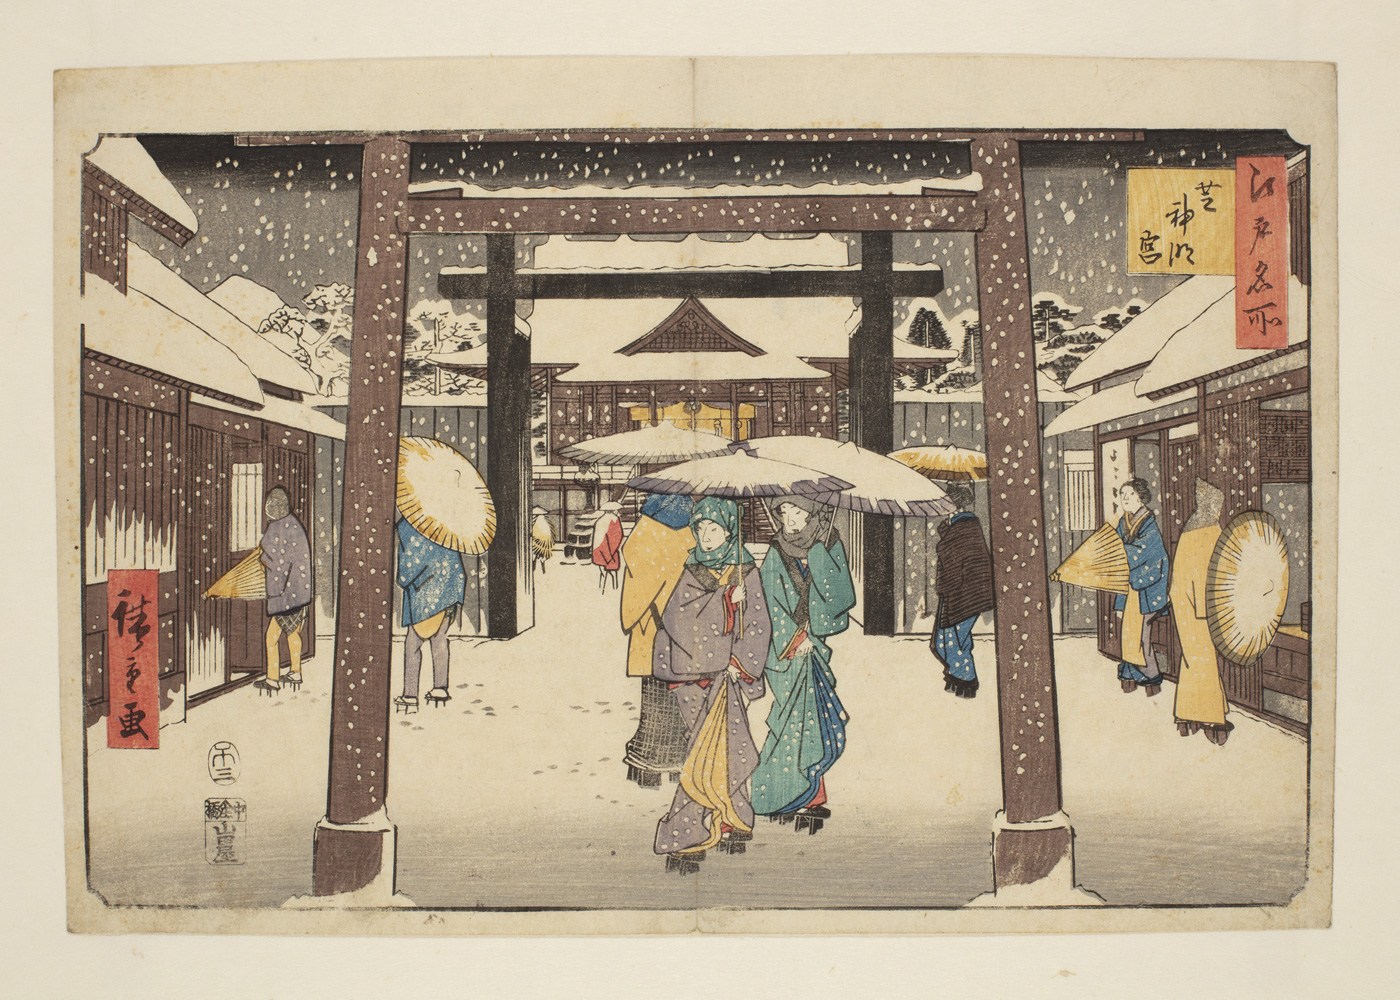 Japanese print of a snowy street scene. A group of people walk towards us and through the arches in the foreground. They are wearing traditional clothes and holding umbrellas to shelter from the snow. Around them are other people looking in the buildings at the side and back of the scene.